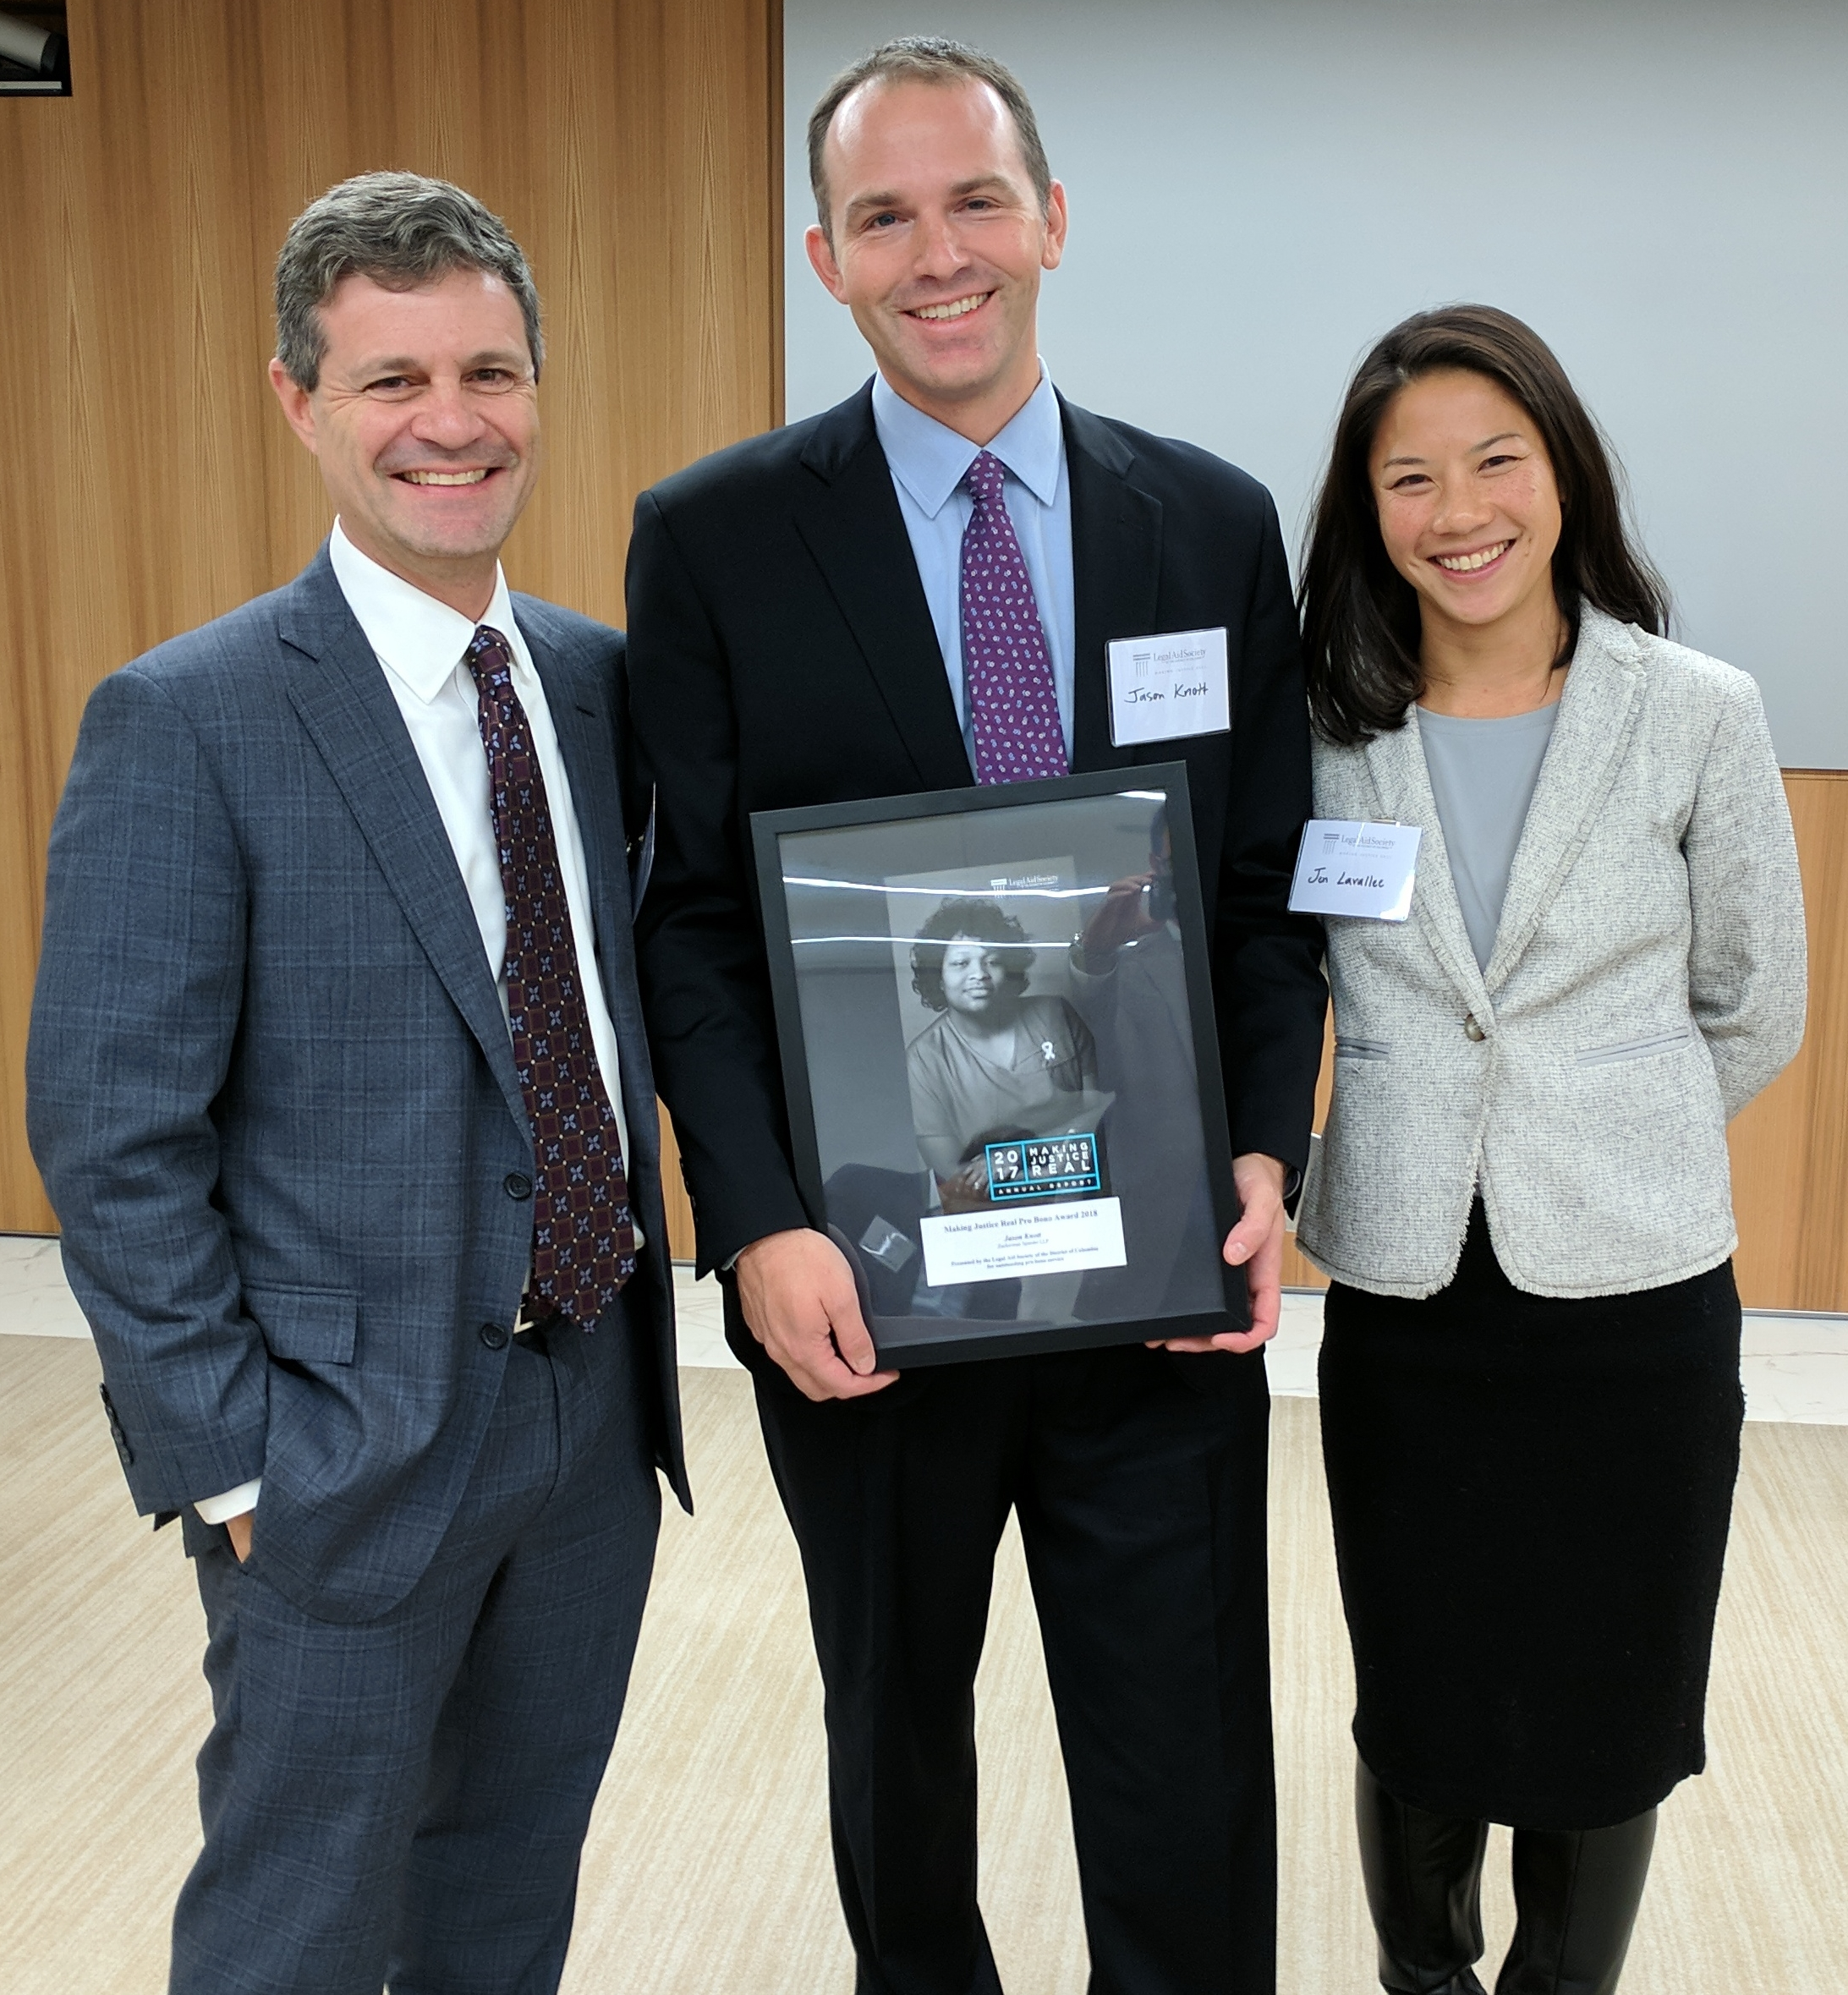 Legal Aid Honors Jason Knott Of Zuckerman Spaeder Making Justice